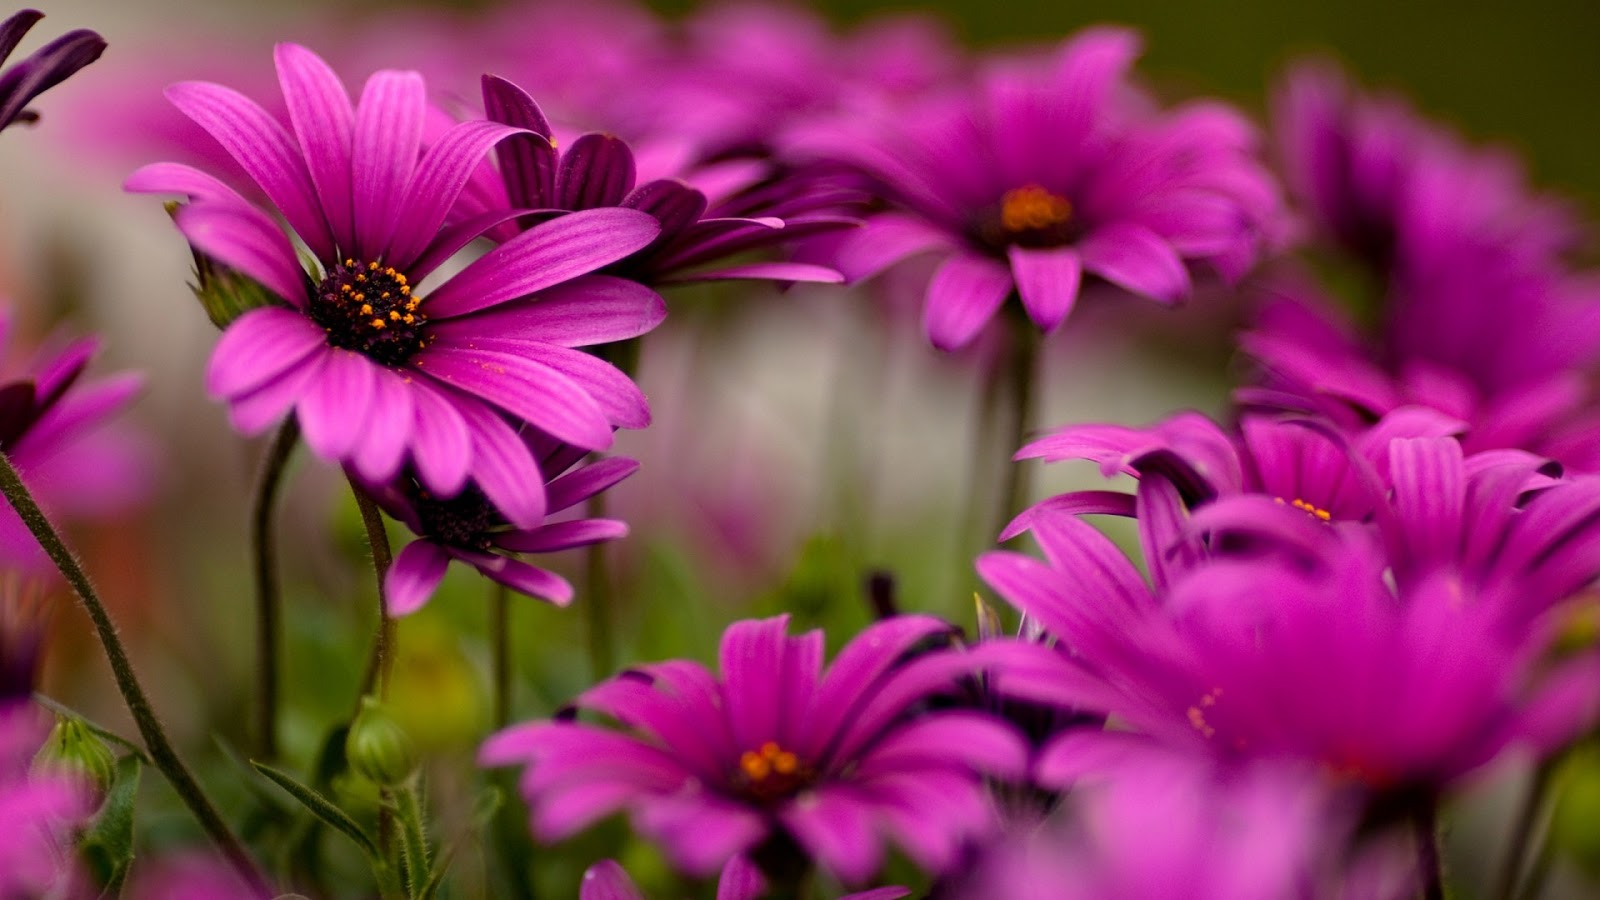 flower hd wallpaper